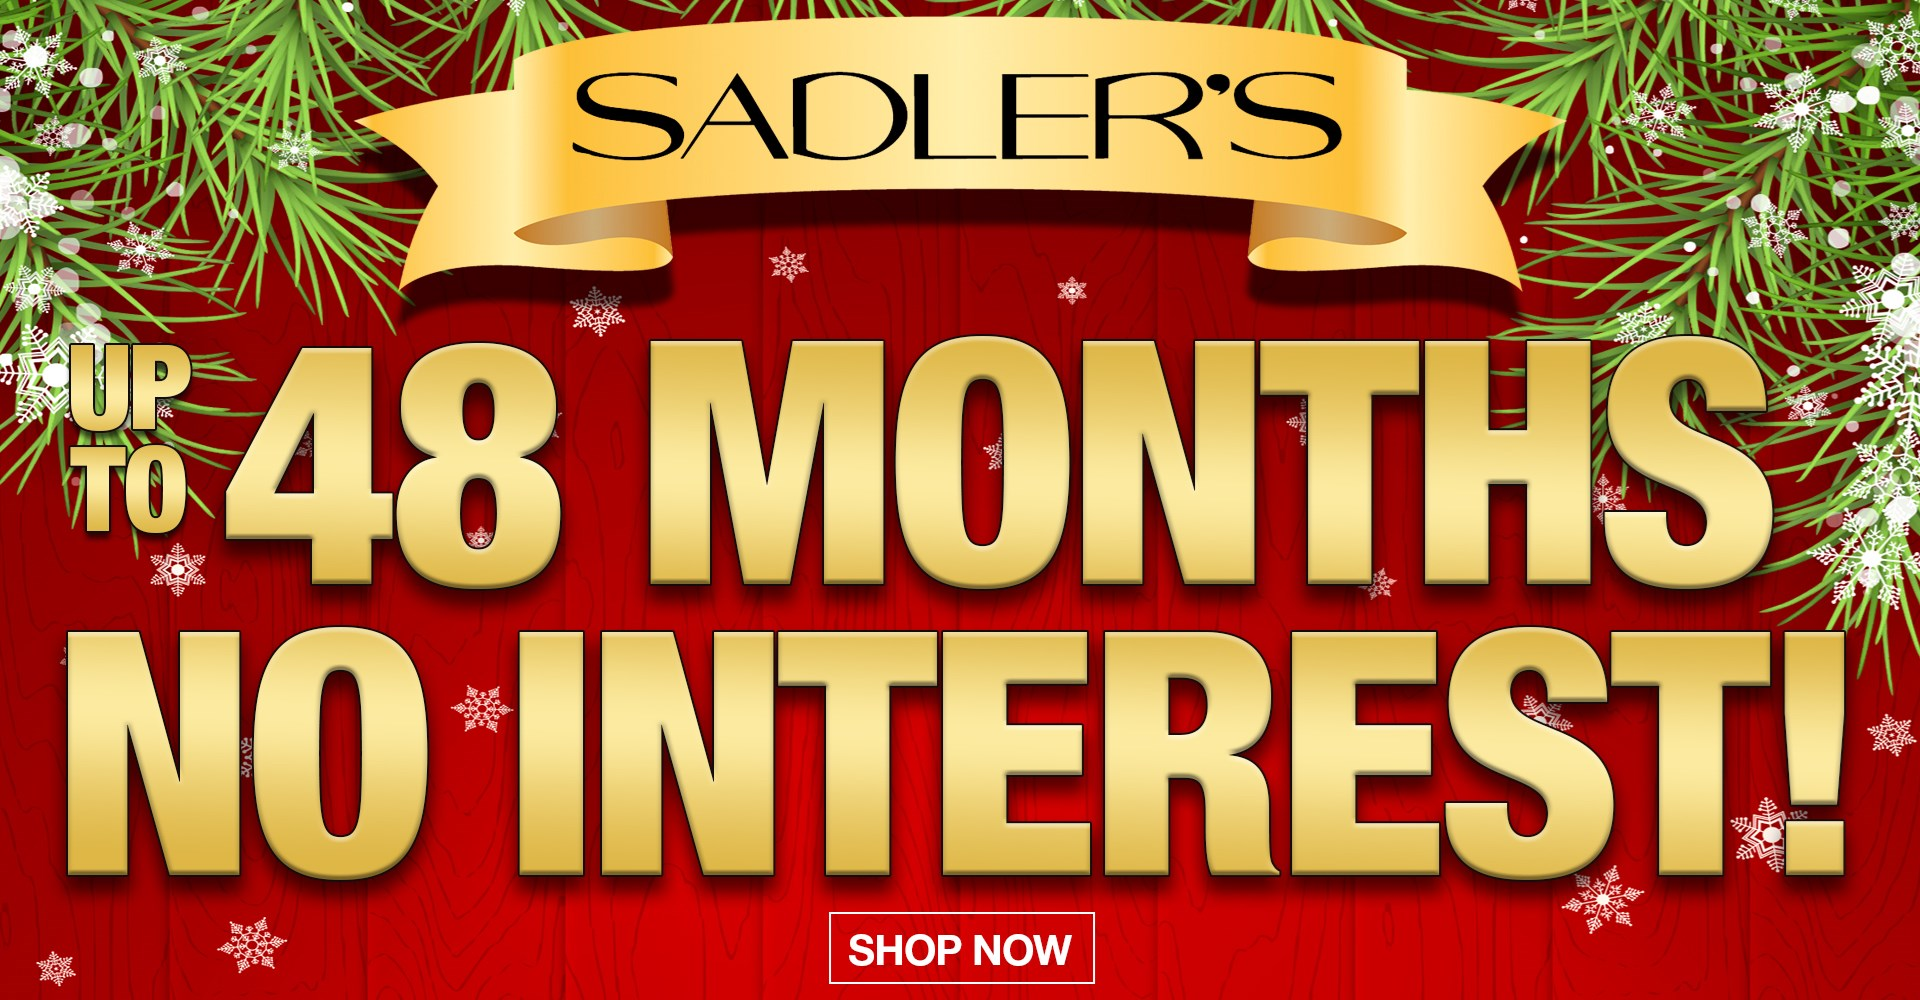 Sadlers Up To 48 Months No Interest